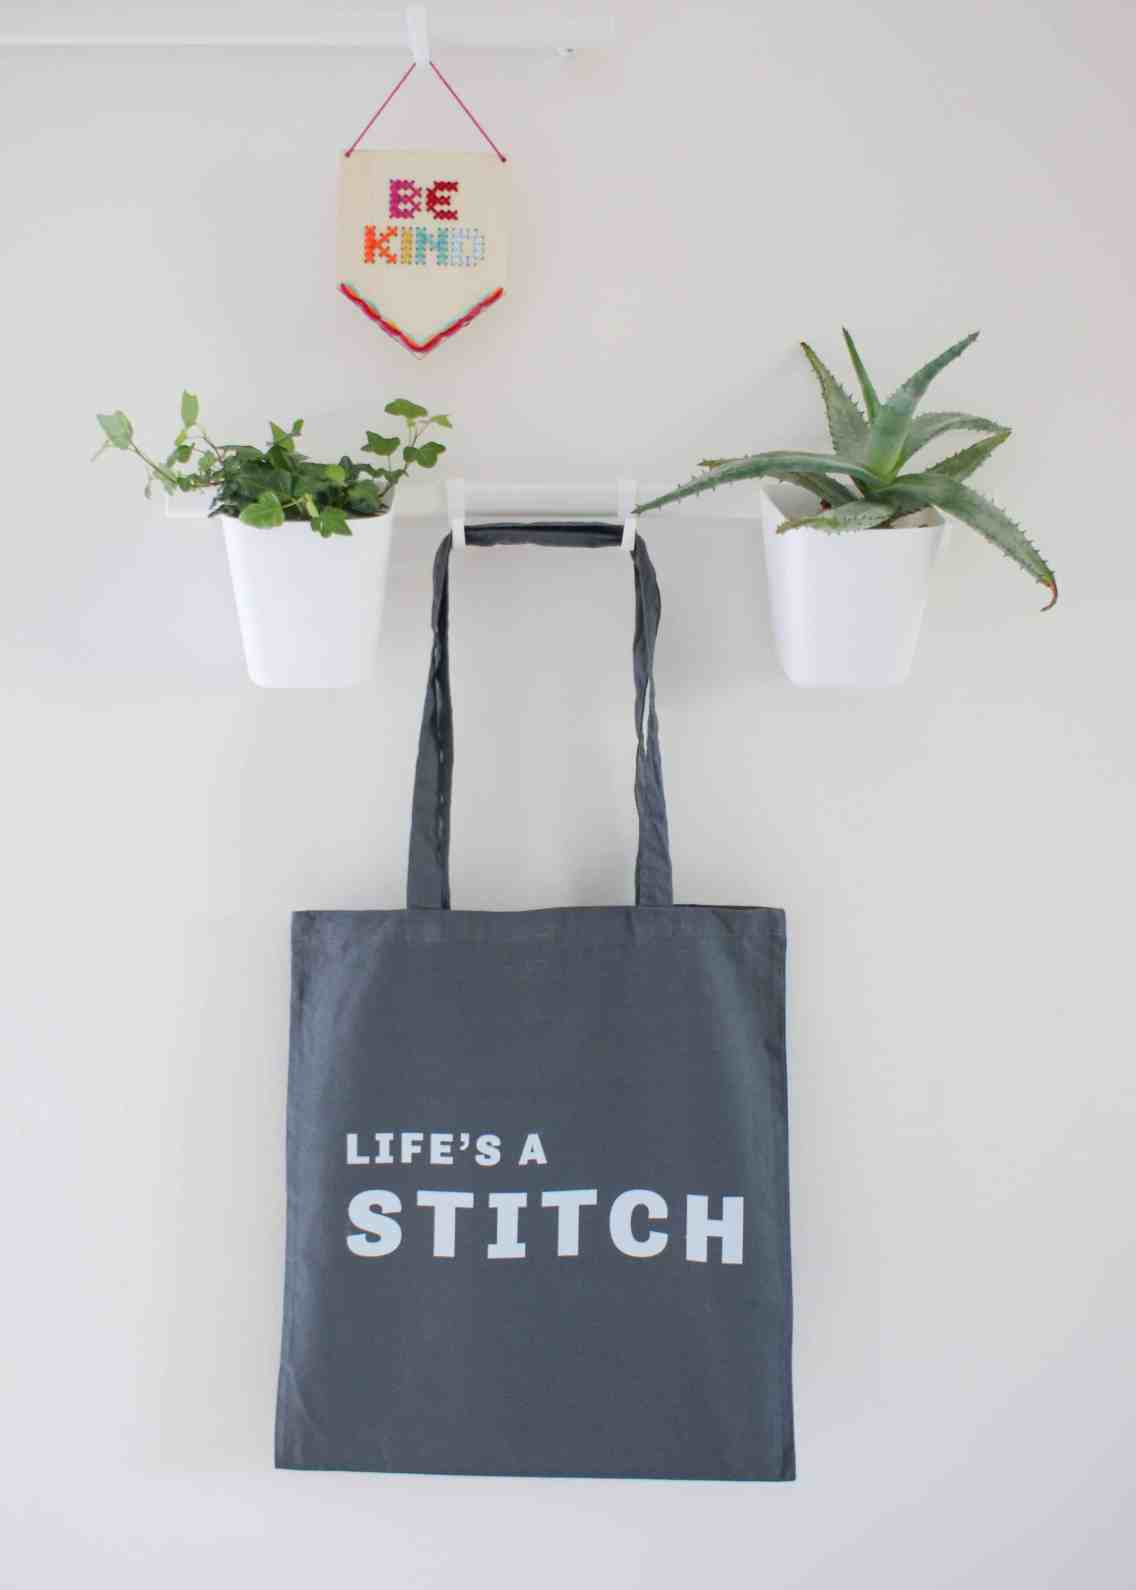 Life's a stitch screenprinted cotton tote